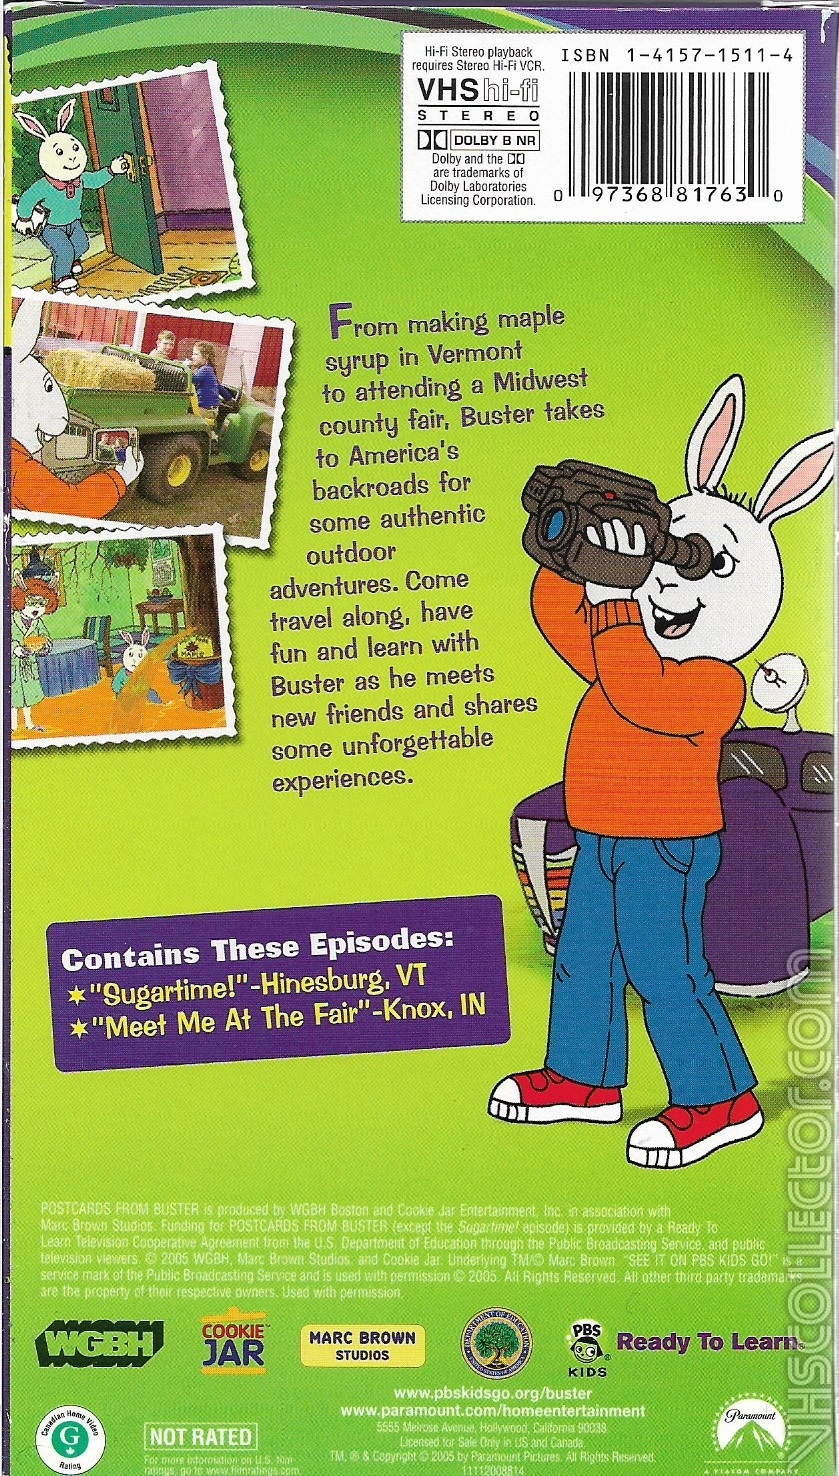 The Vcr From Heck Fifty Cartoons Week Tuesday 50: Postcards From Buster: Buster's Outdoor Journeys